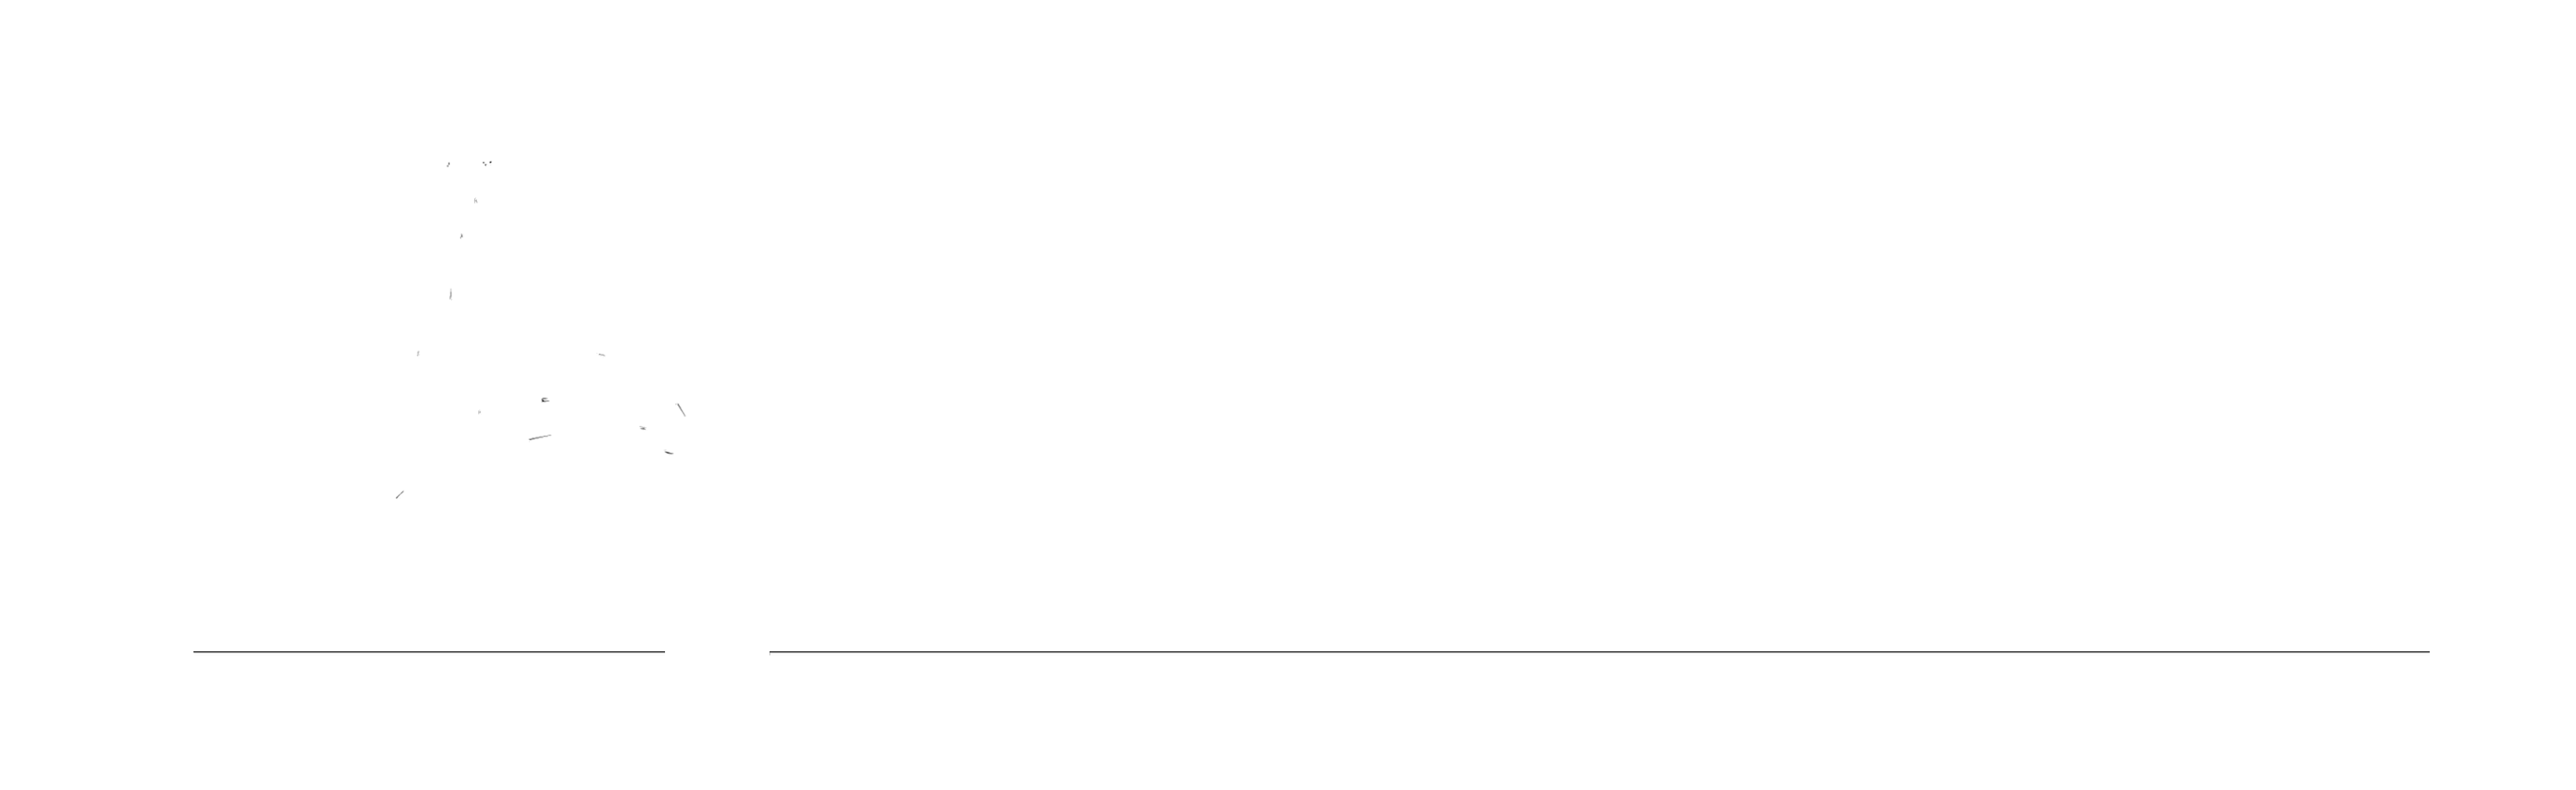 Village Missions of Canada